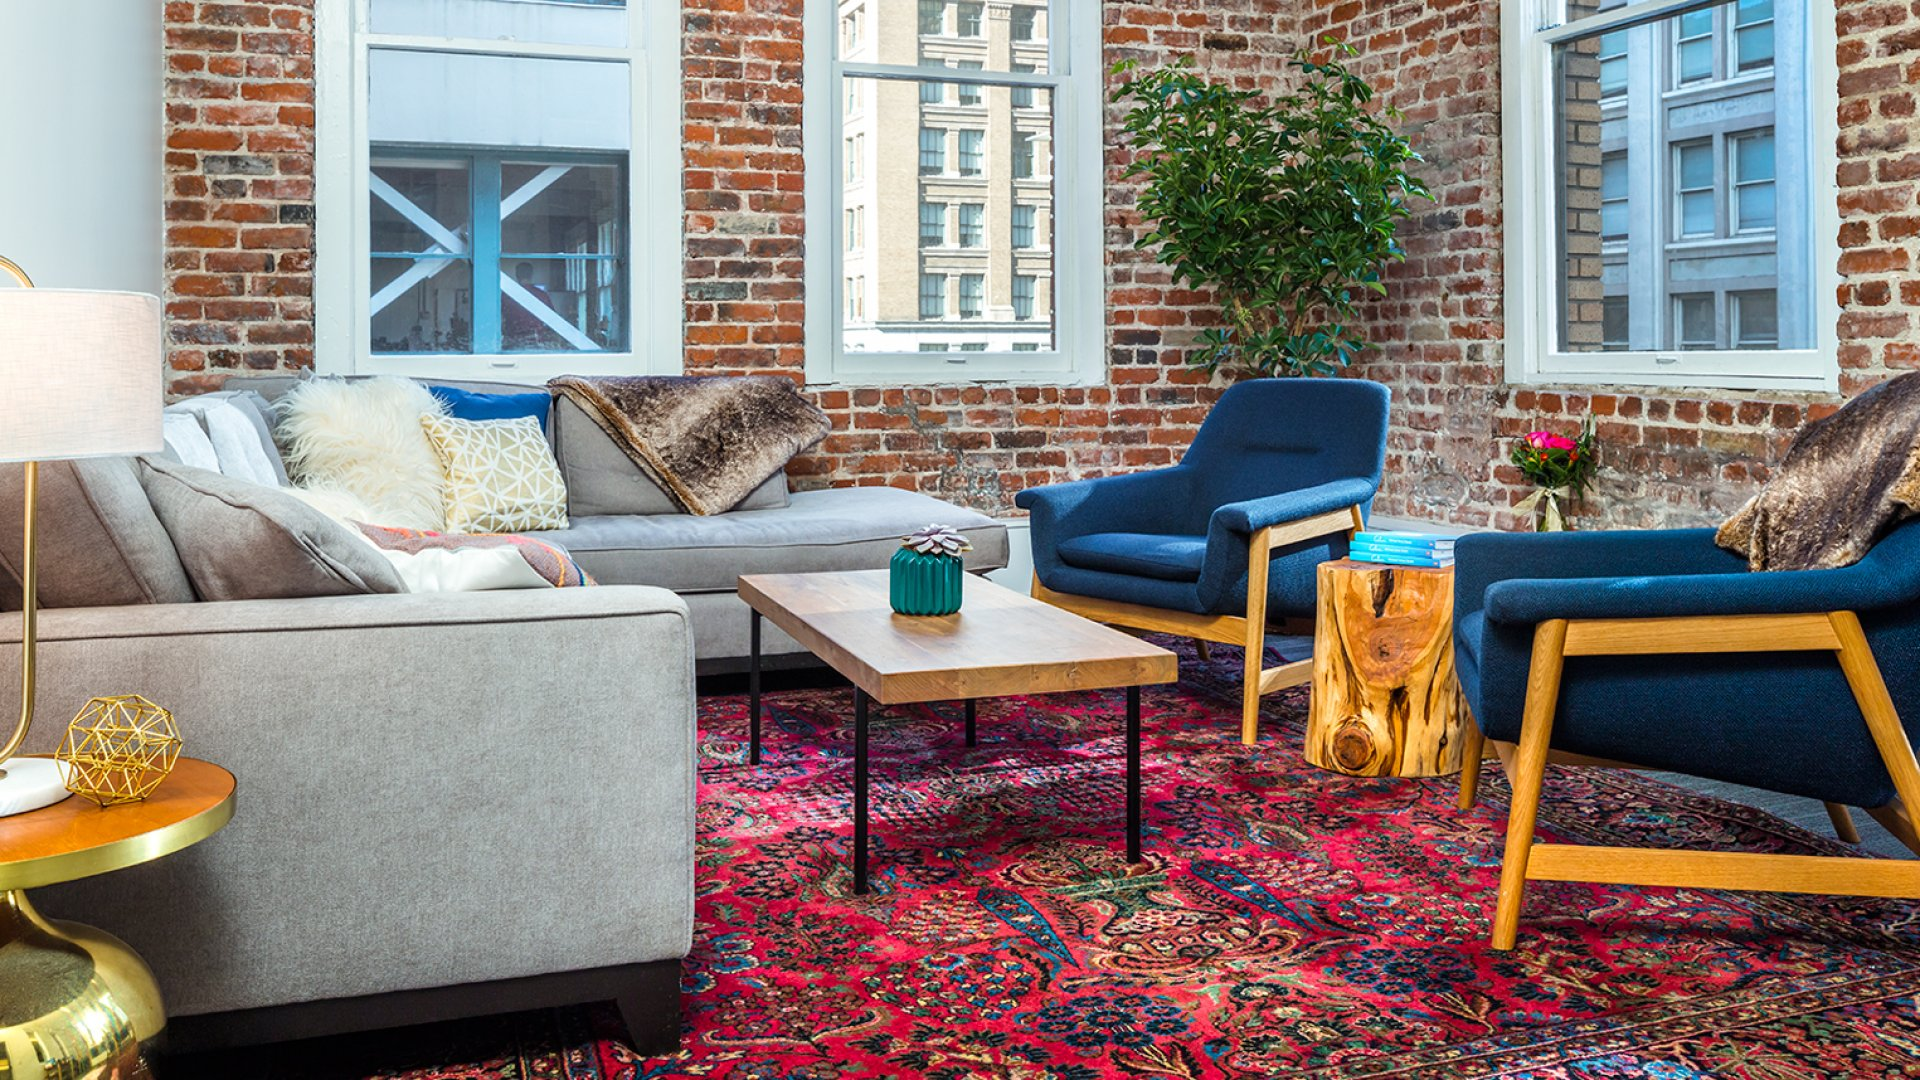 Swings, Dogs, and Meditation Rooms: A Look Inside America's Most Successful Companies